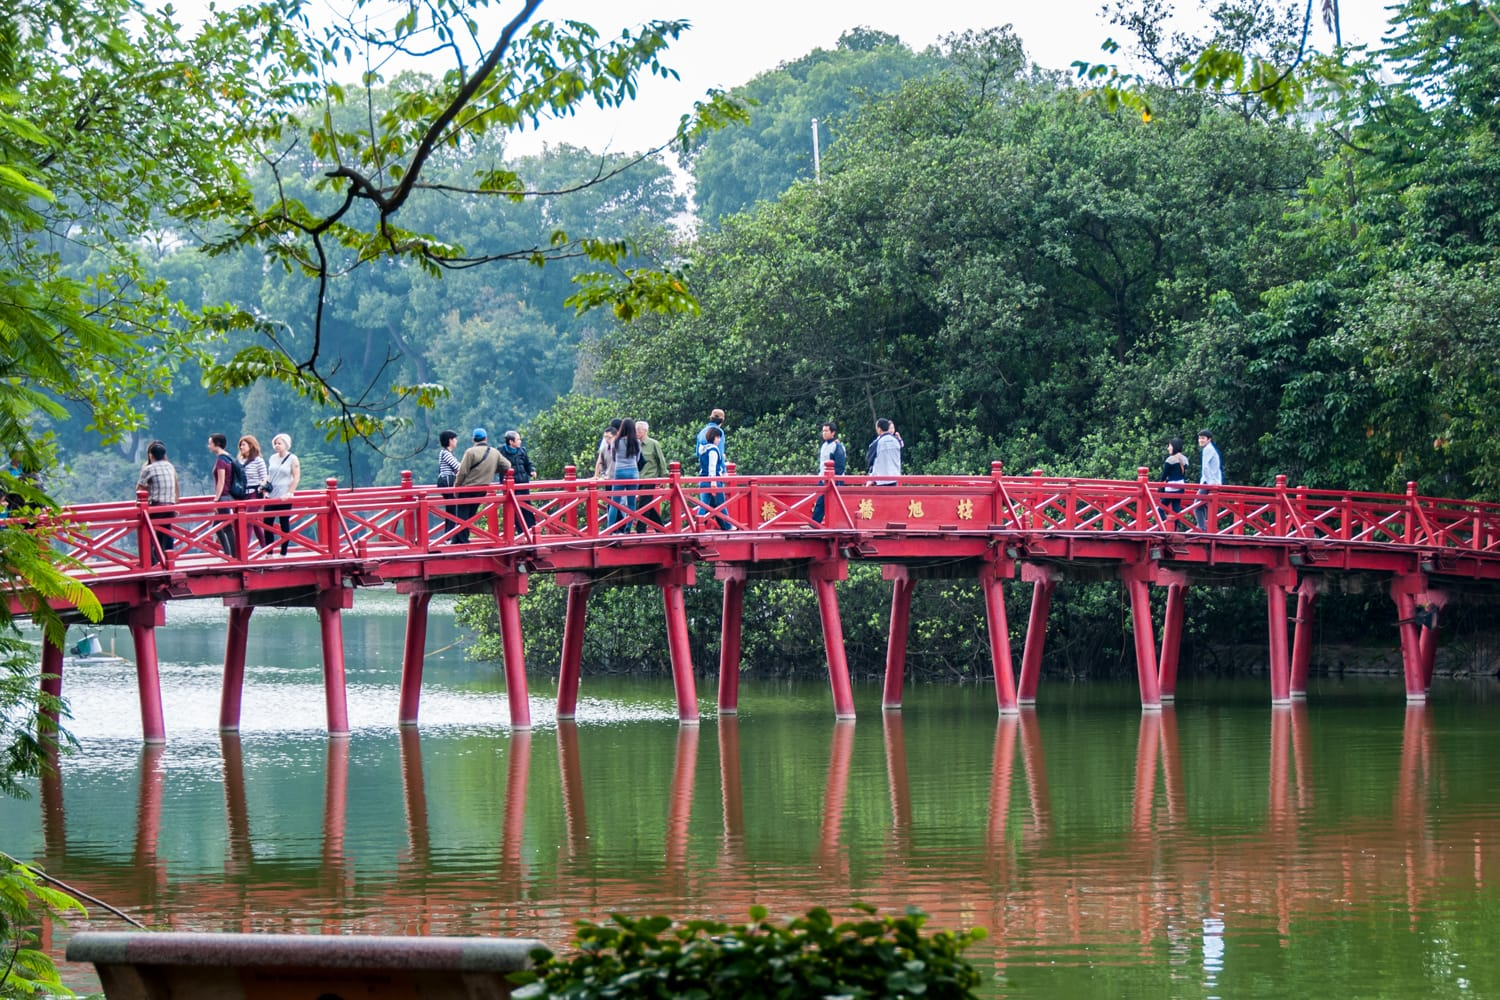 The Duc, a wooden bridge painted in red, which leads to the Ngoc Son Temple in Hanoi, Vietnam